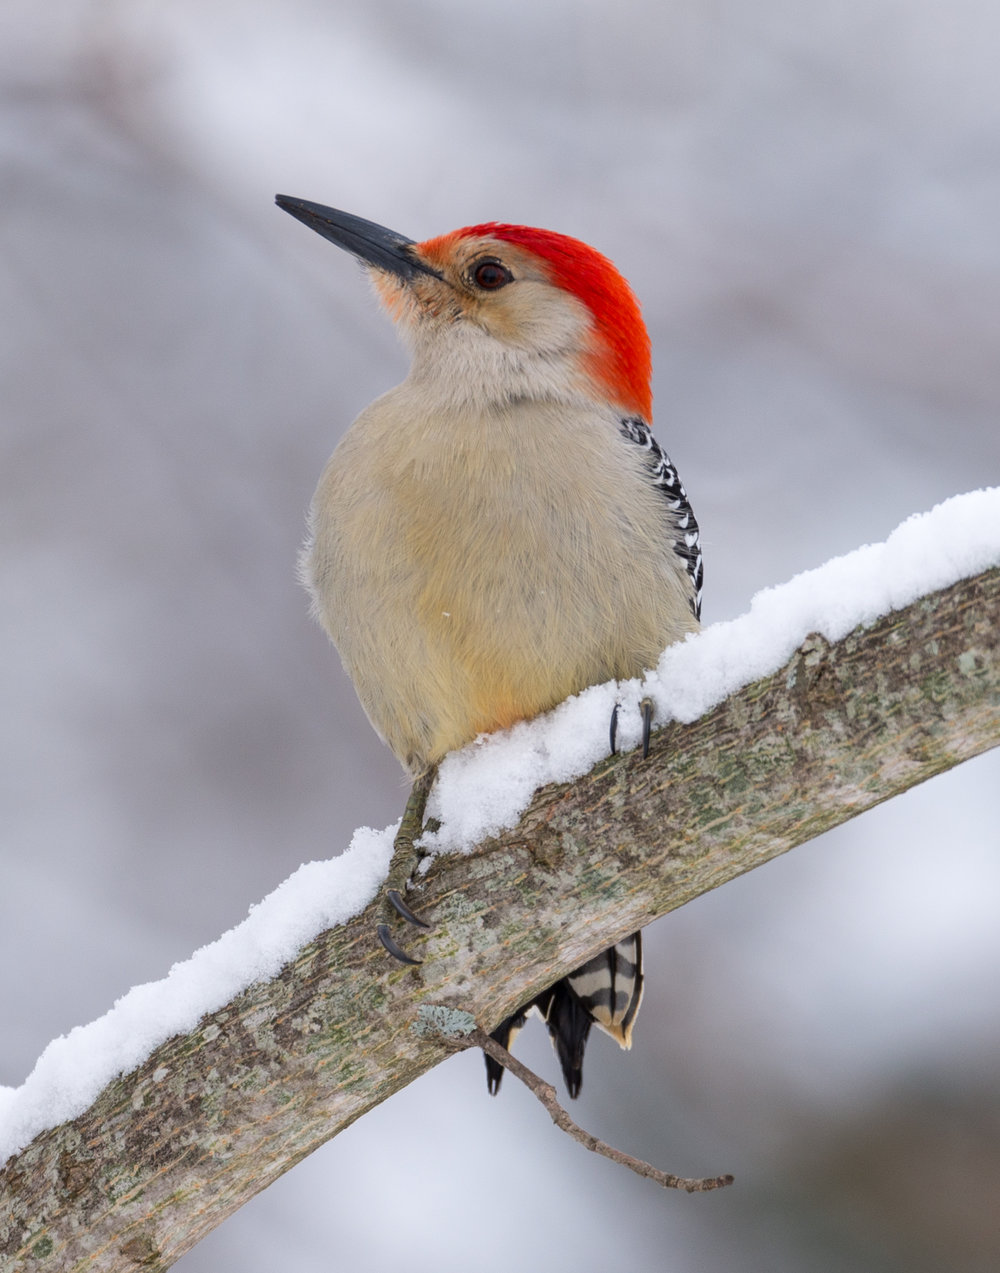 How To Photograph Backyard Birds In The Snow!